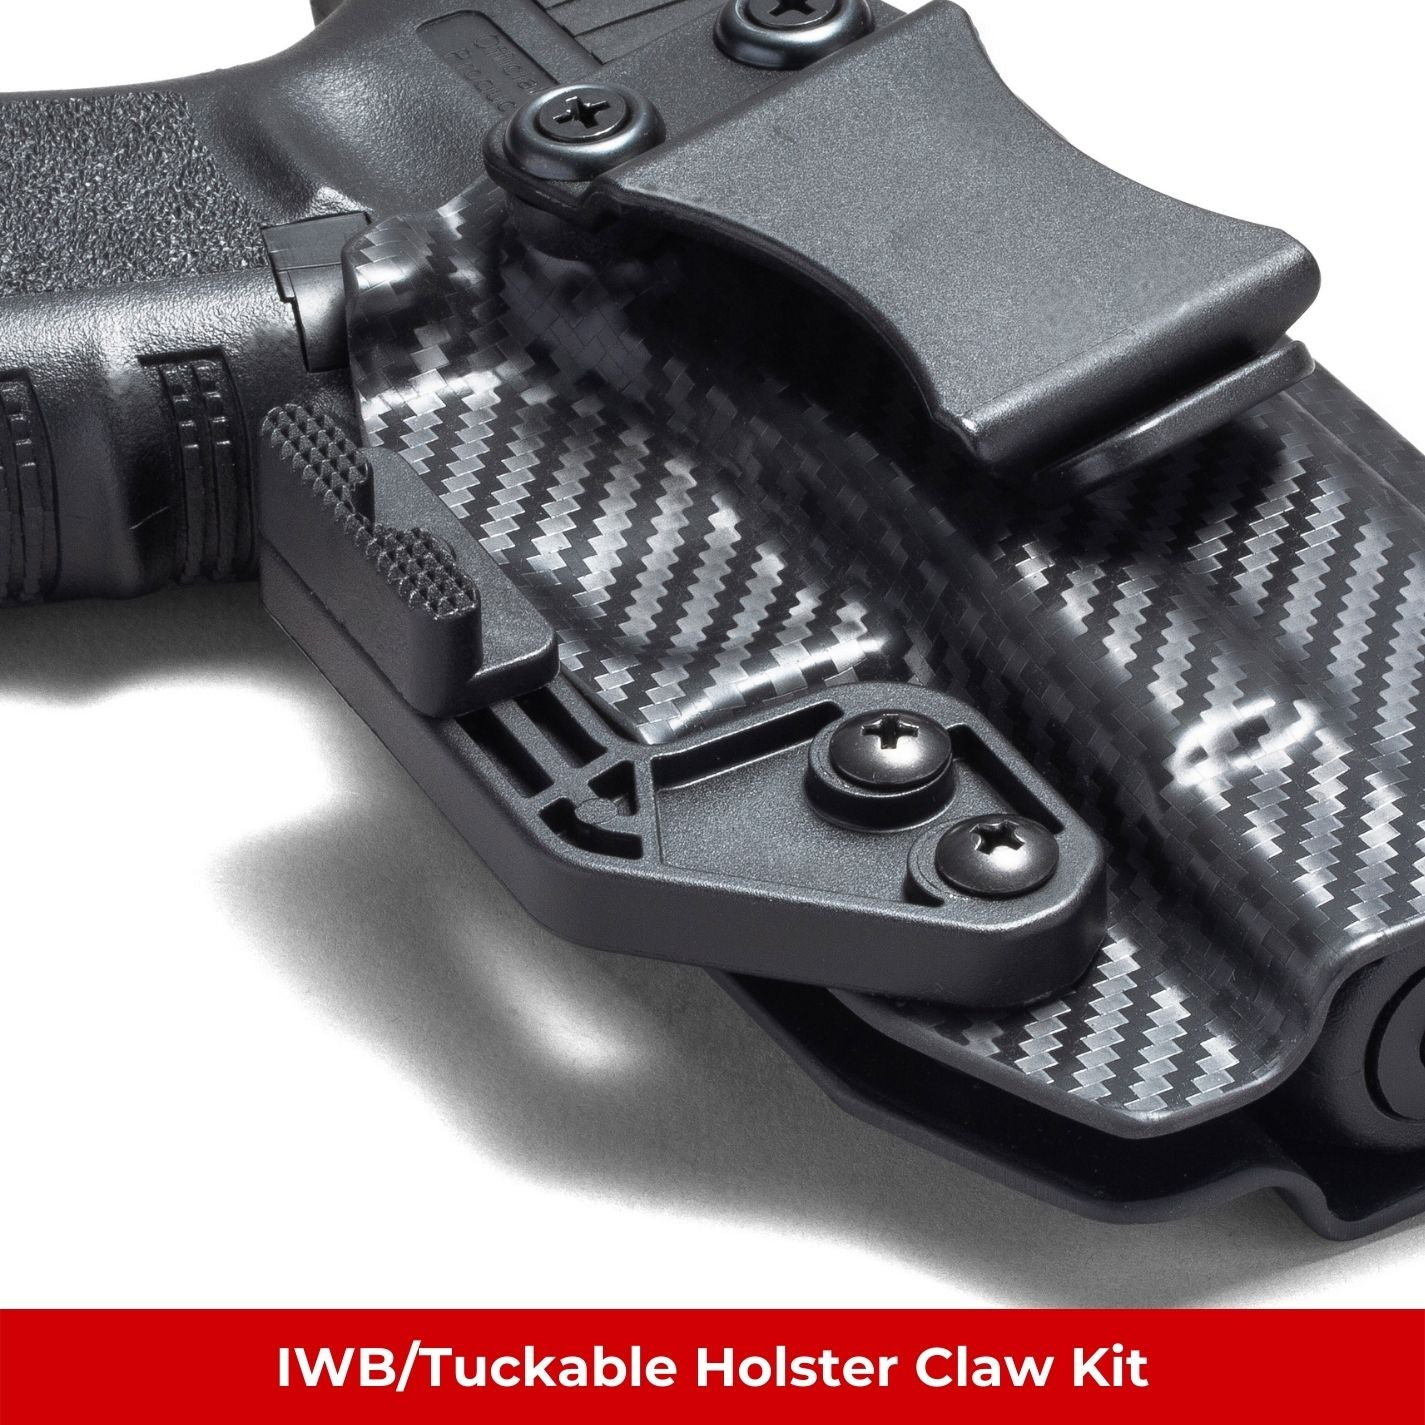 Holster Claw Kit